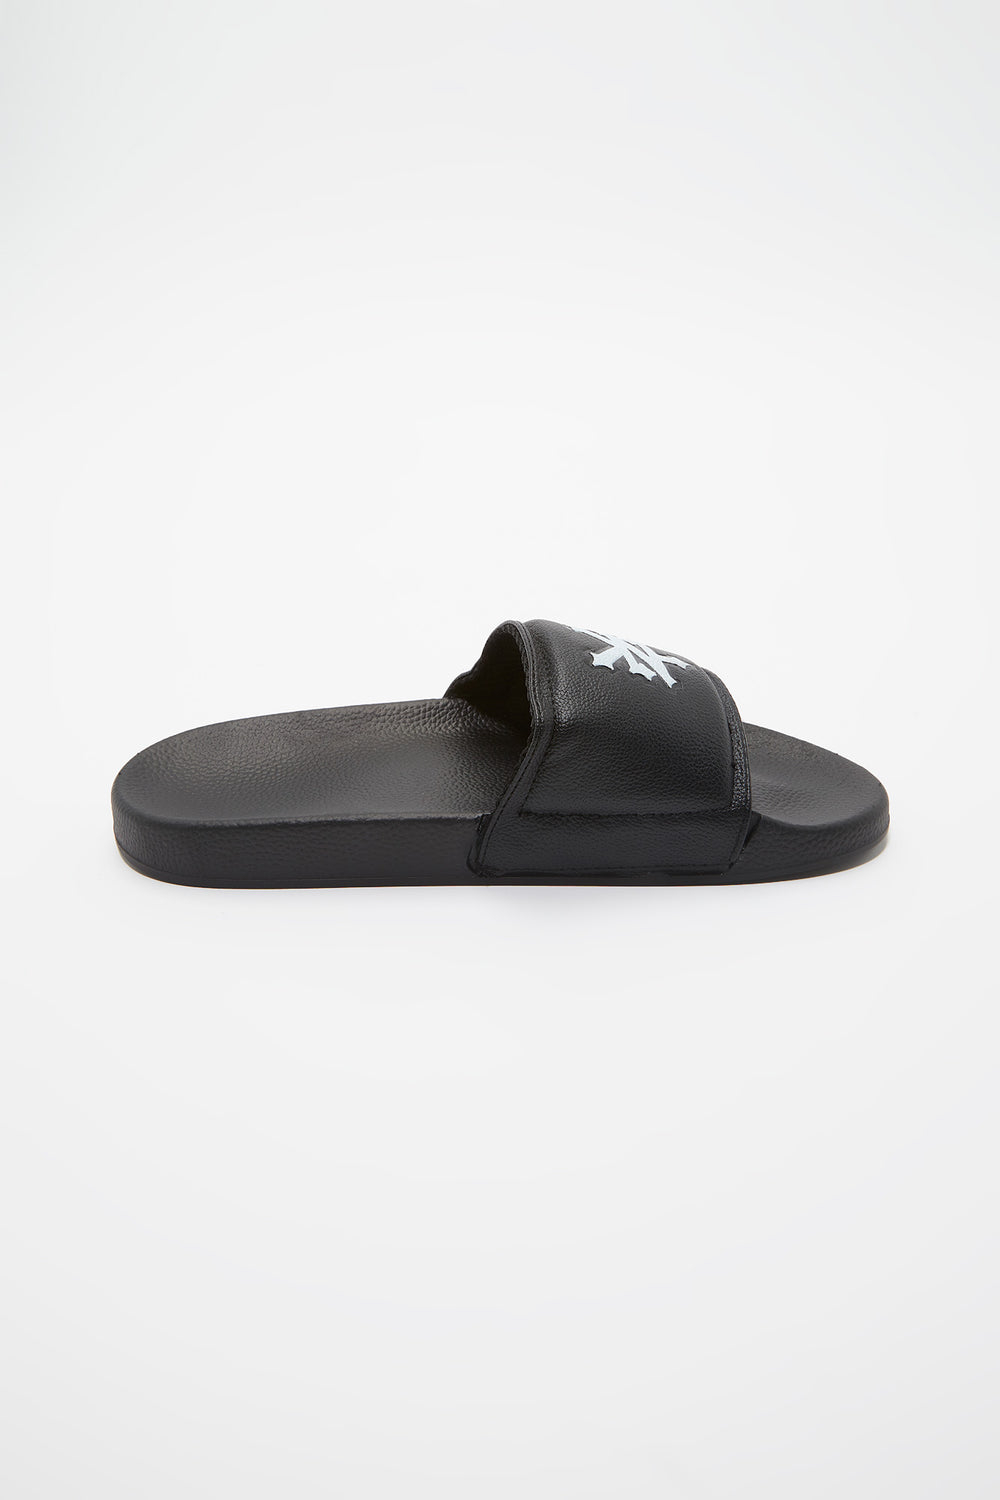 Zoo York Mens Graphic Slider Sandals Black